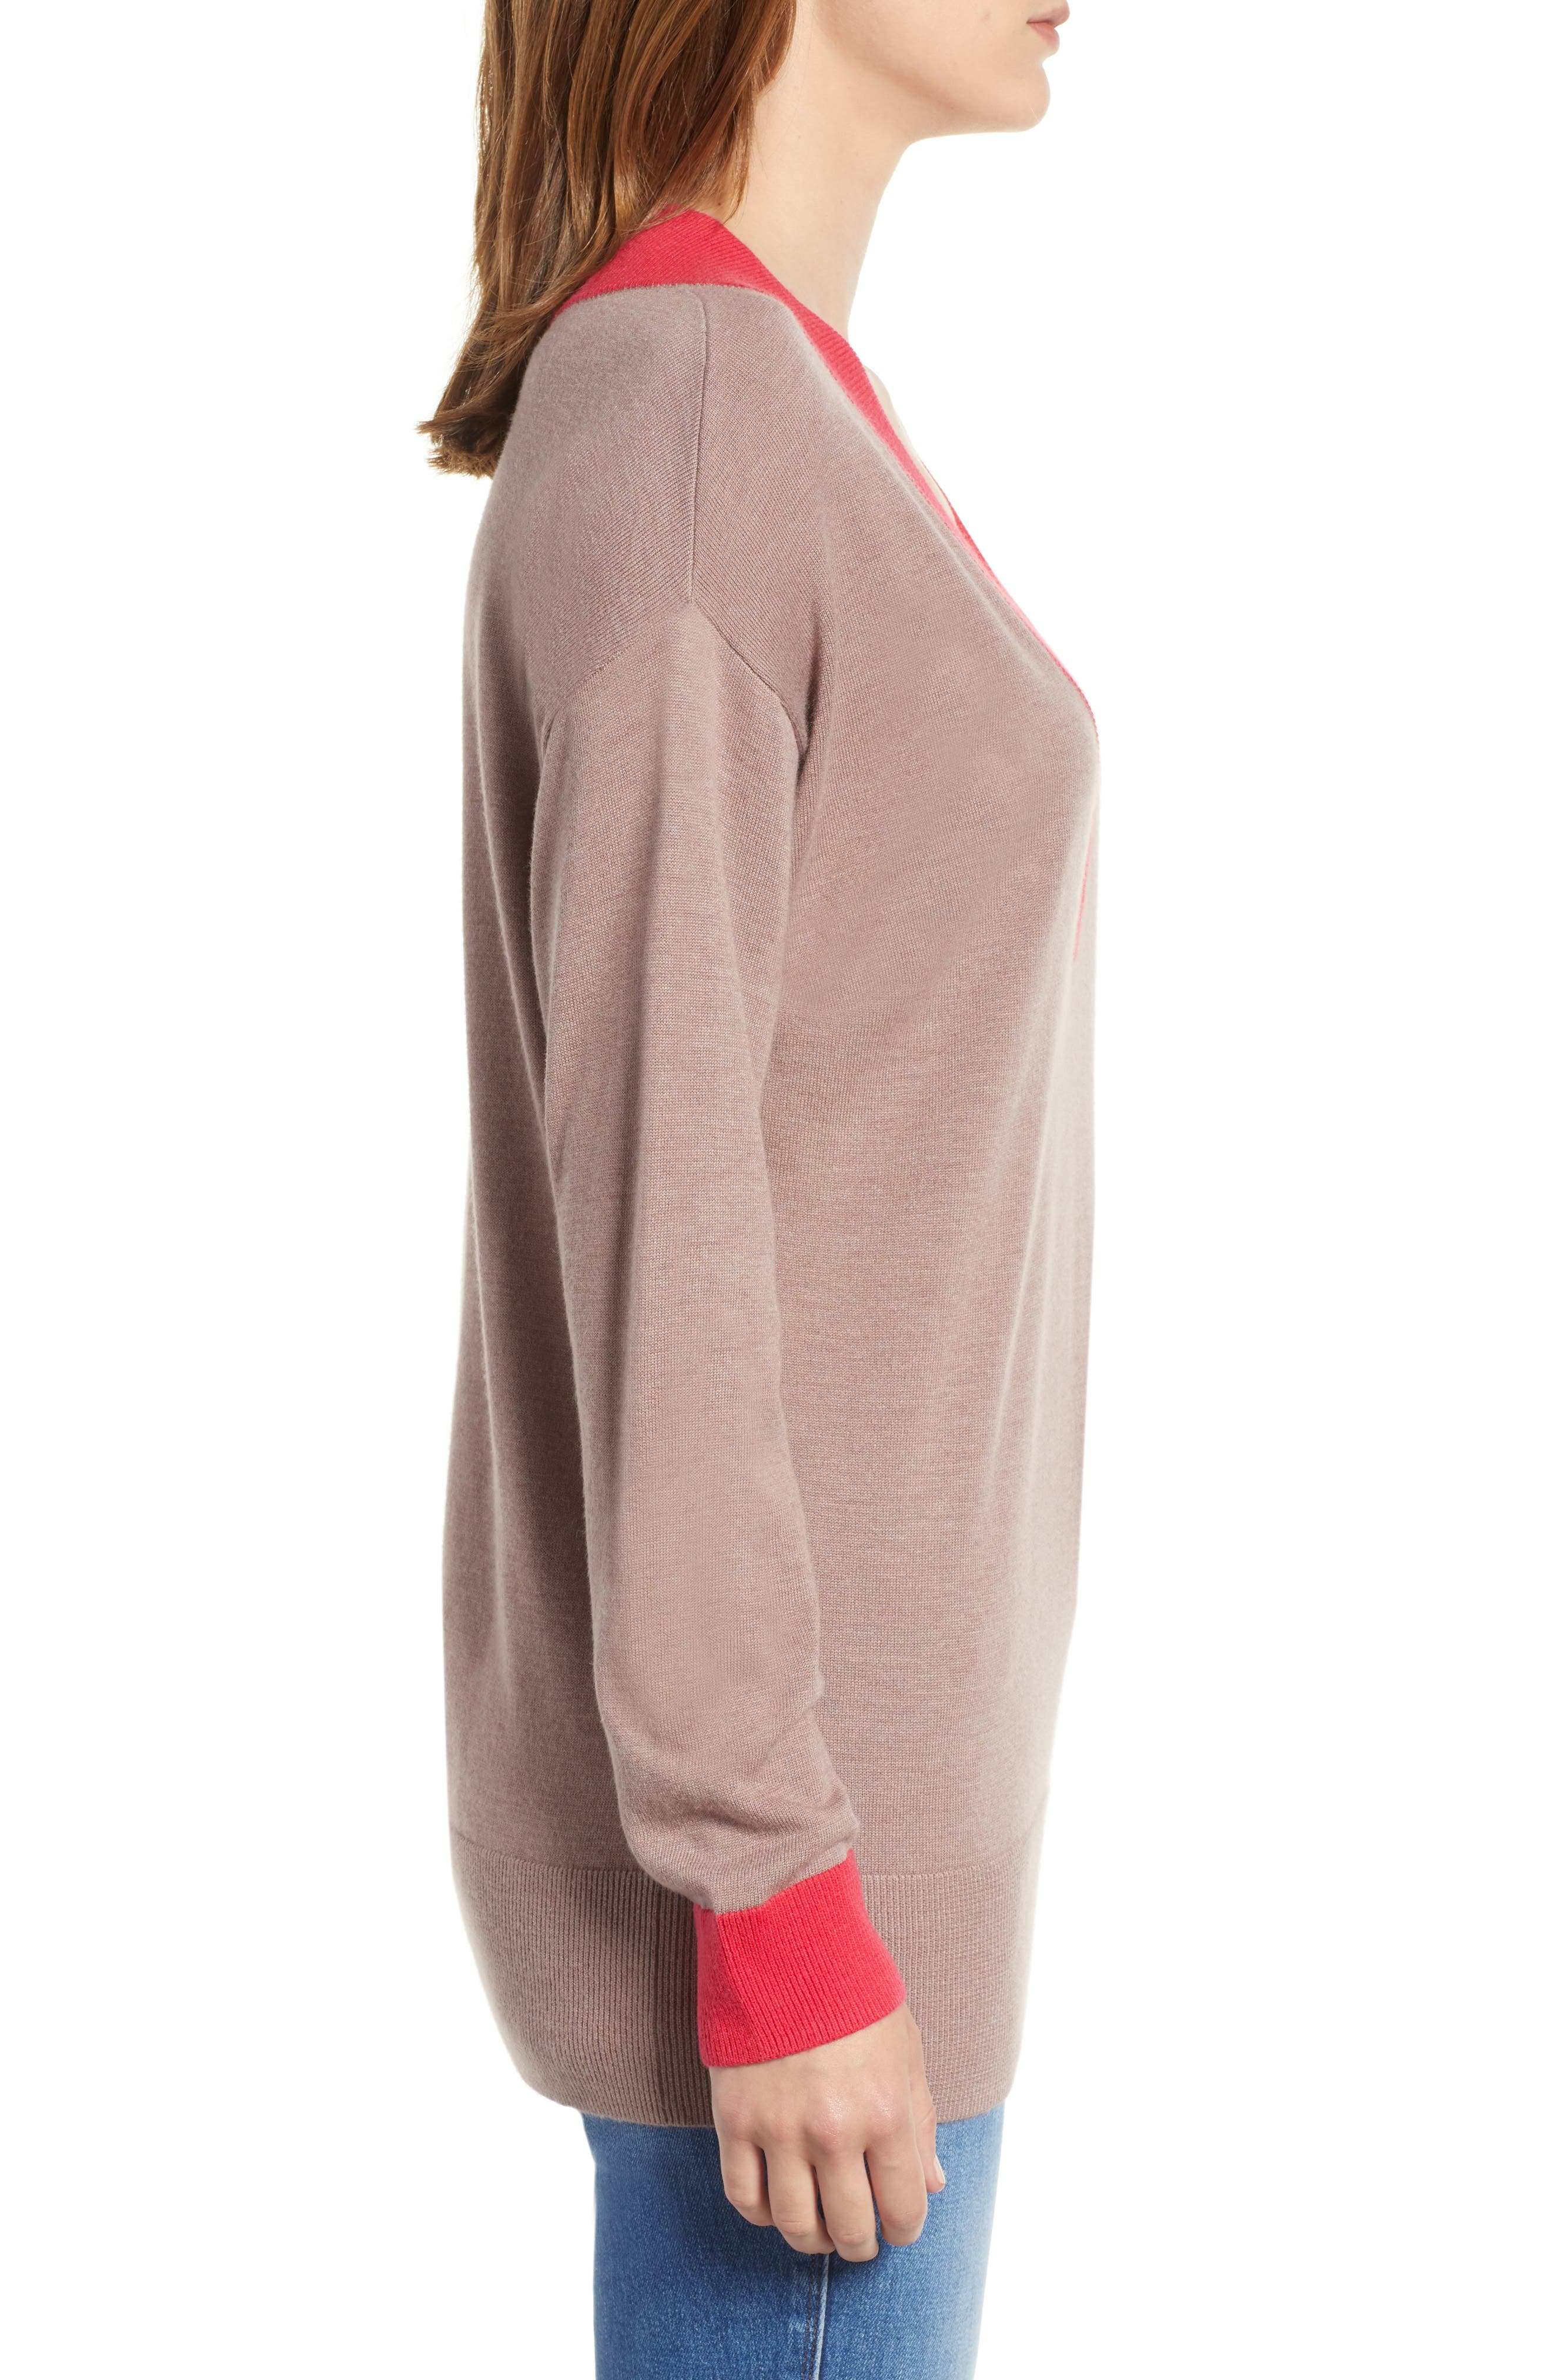 CHELSEA28,                             V-Neck Sweater,                             Alternate thumbnail 3, color,                             PINK FAWN HEATHER COMBO